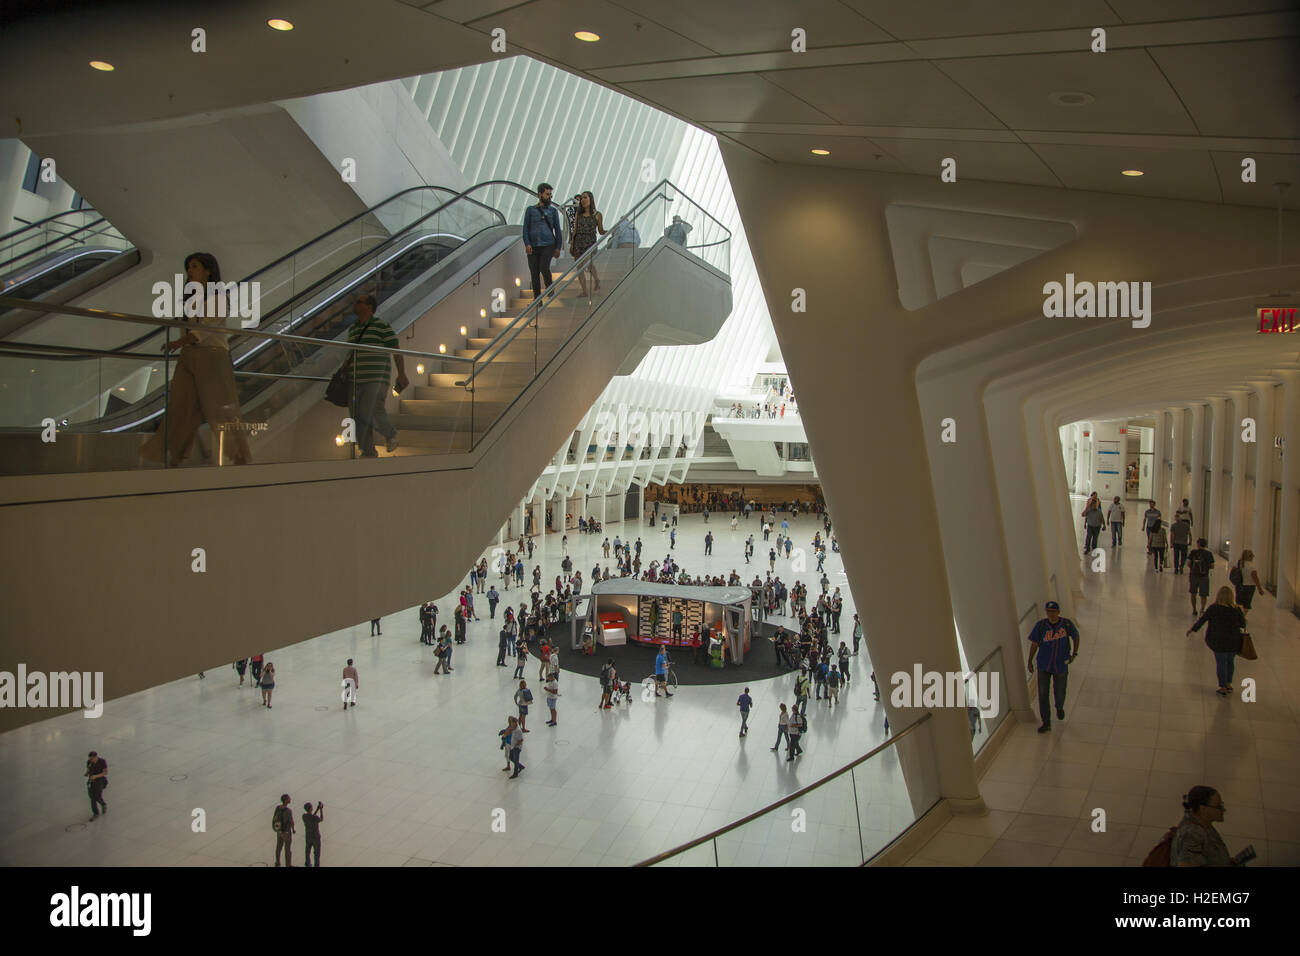 interior-of-the-oculus-mall-at-the-new-w